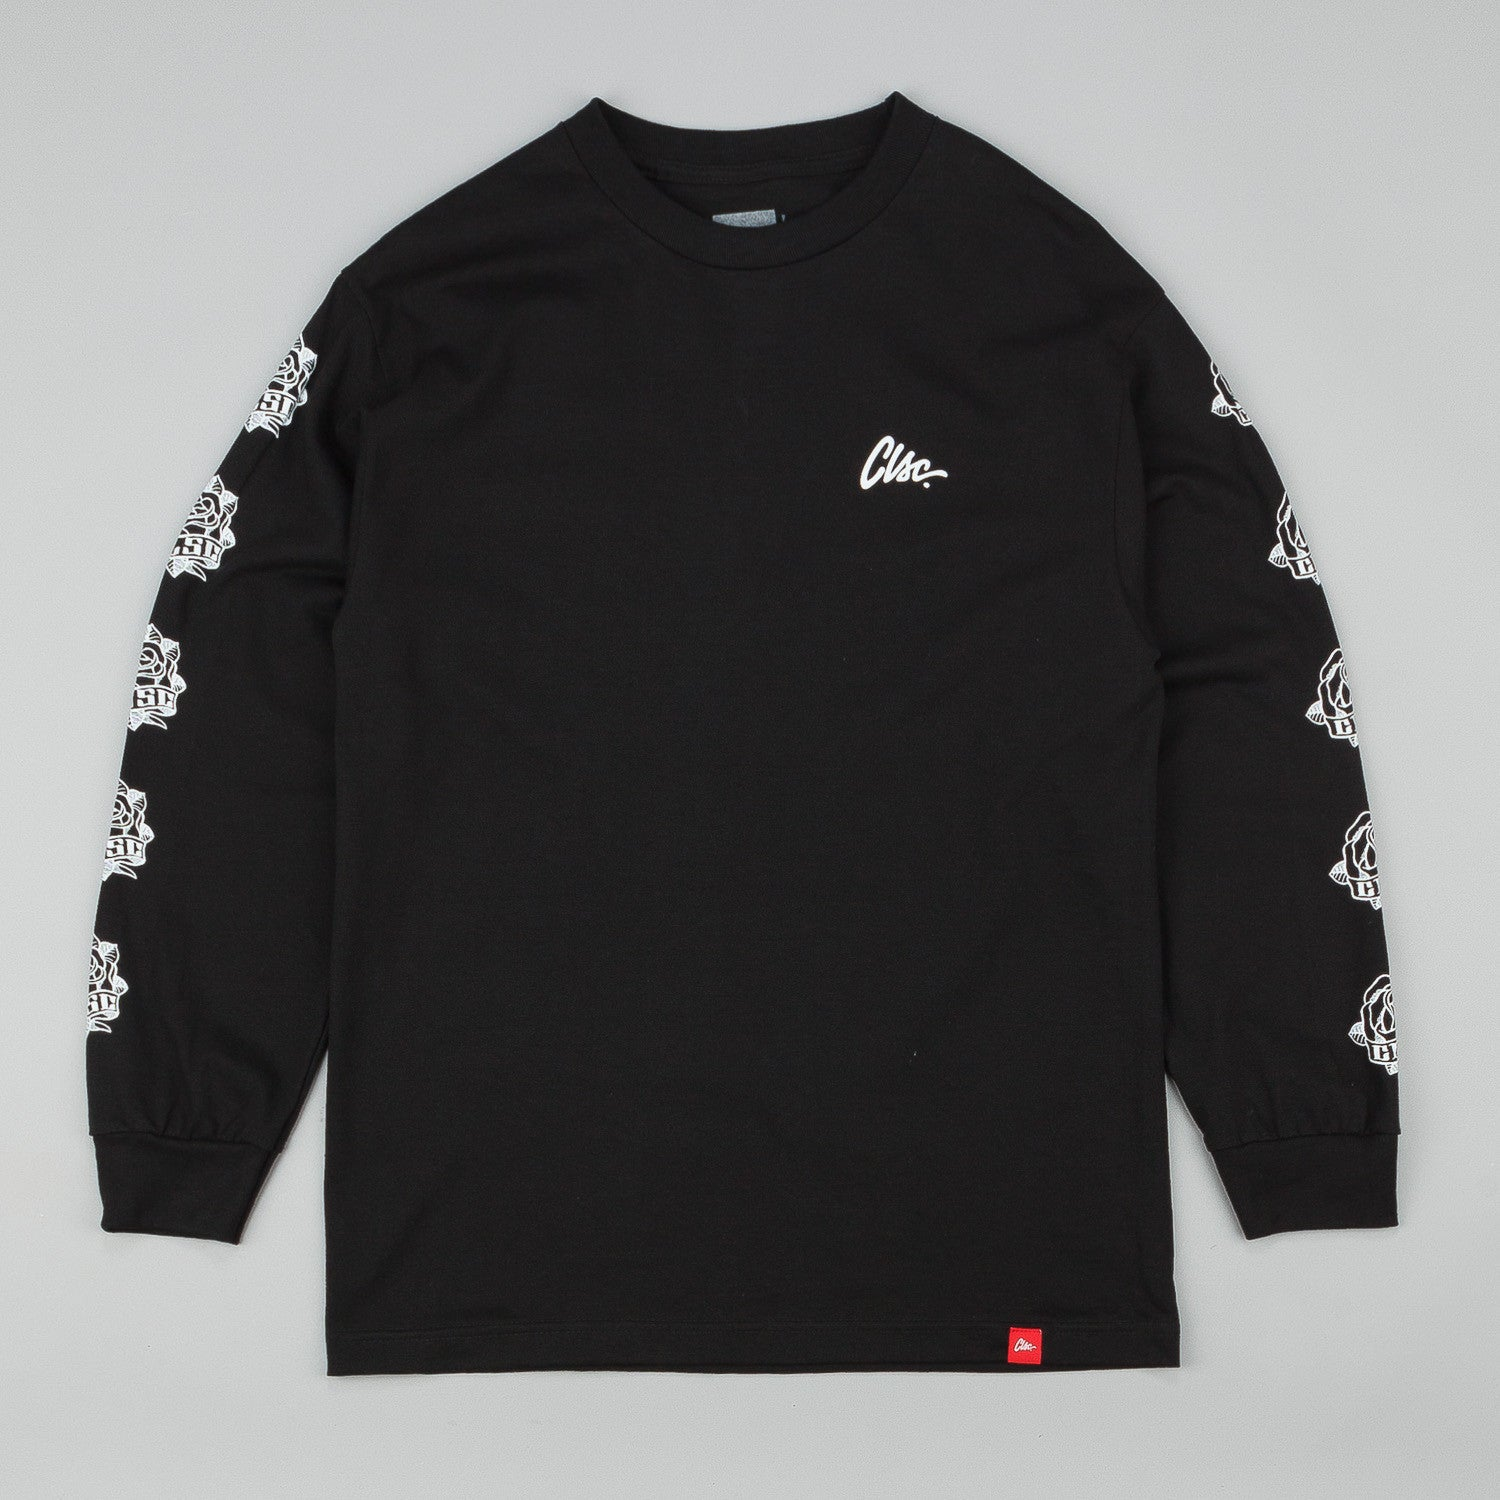 CLSC Rose Long Sleeve T-Shirt - Black